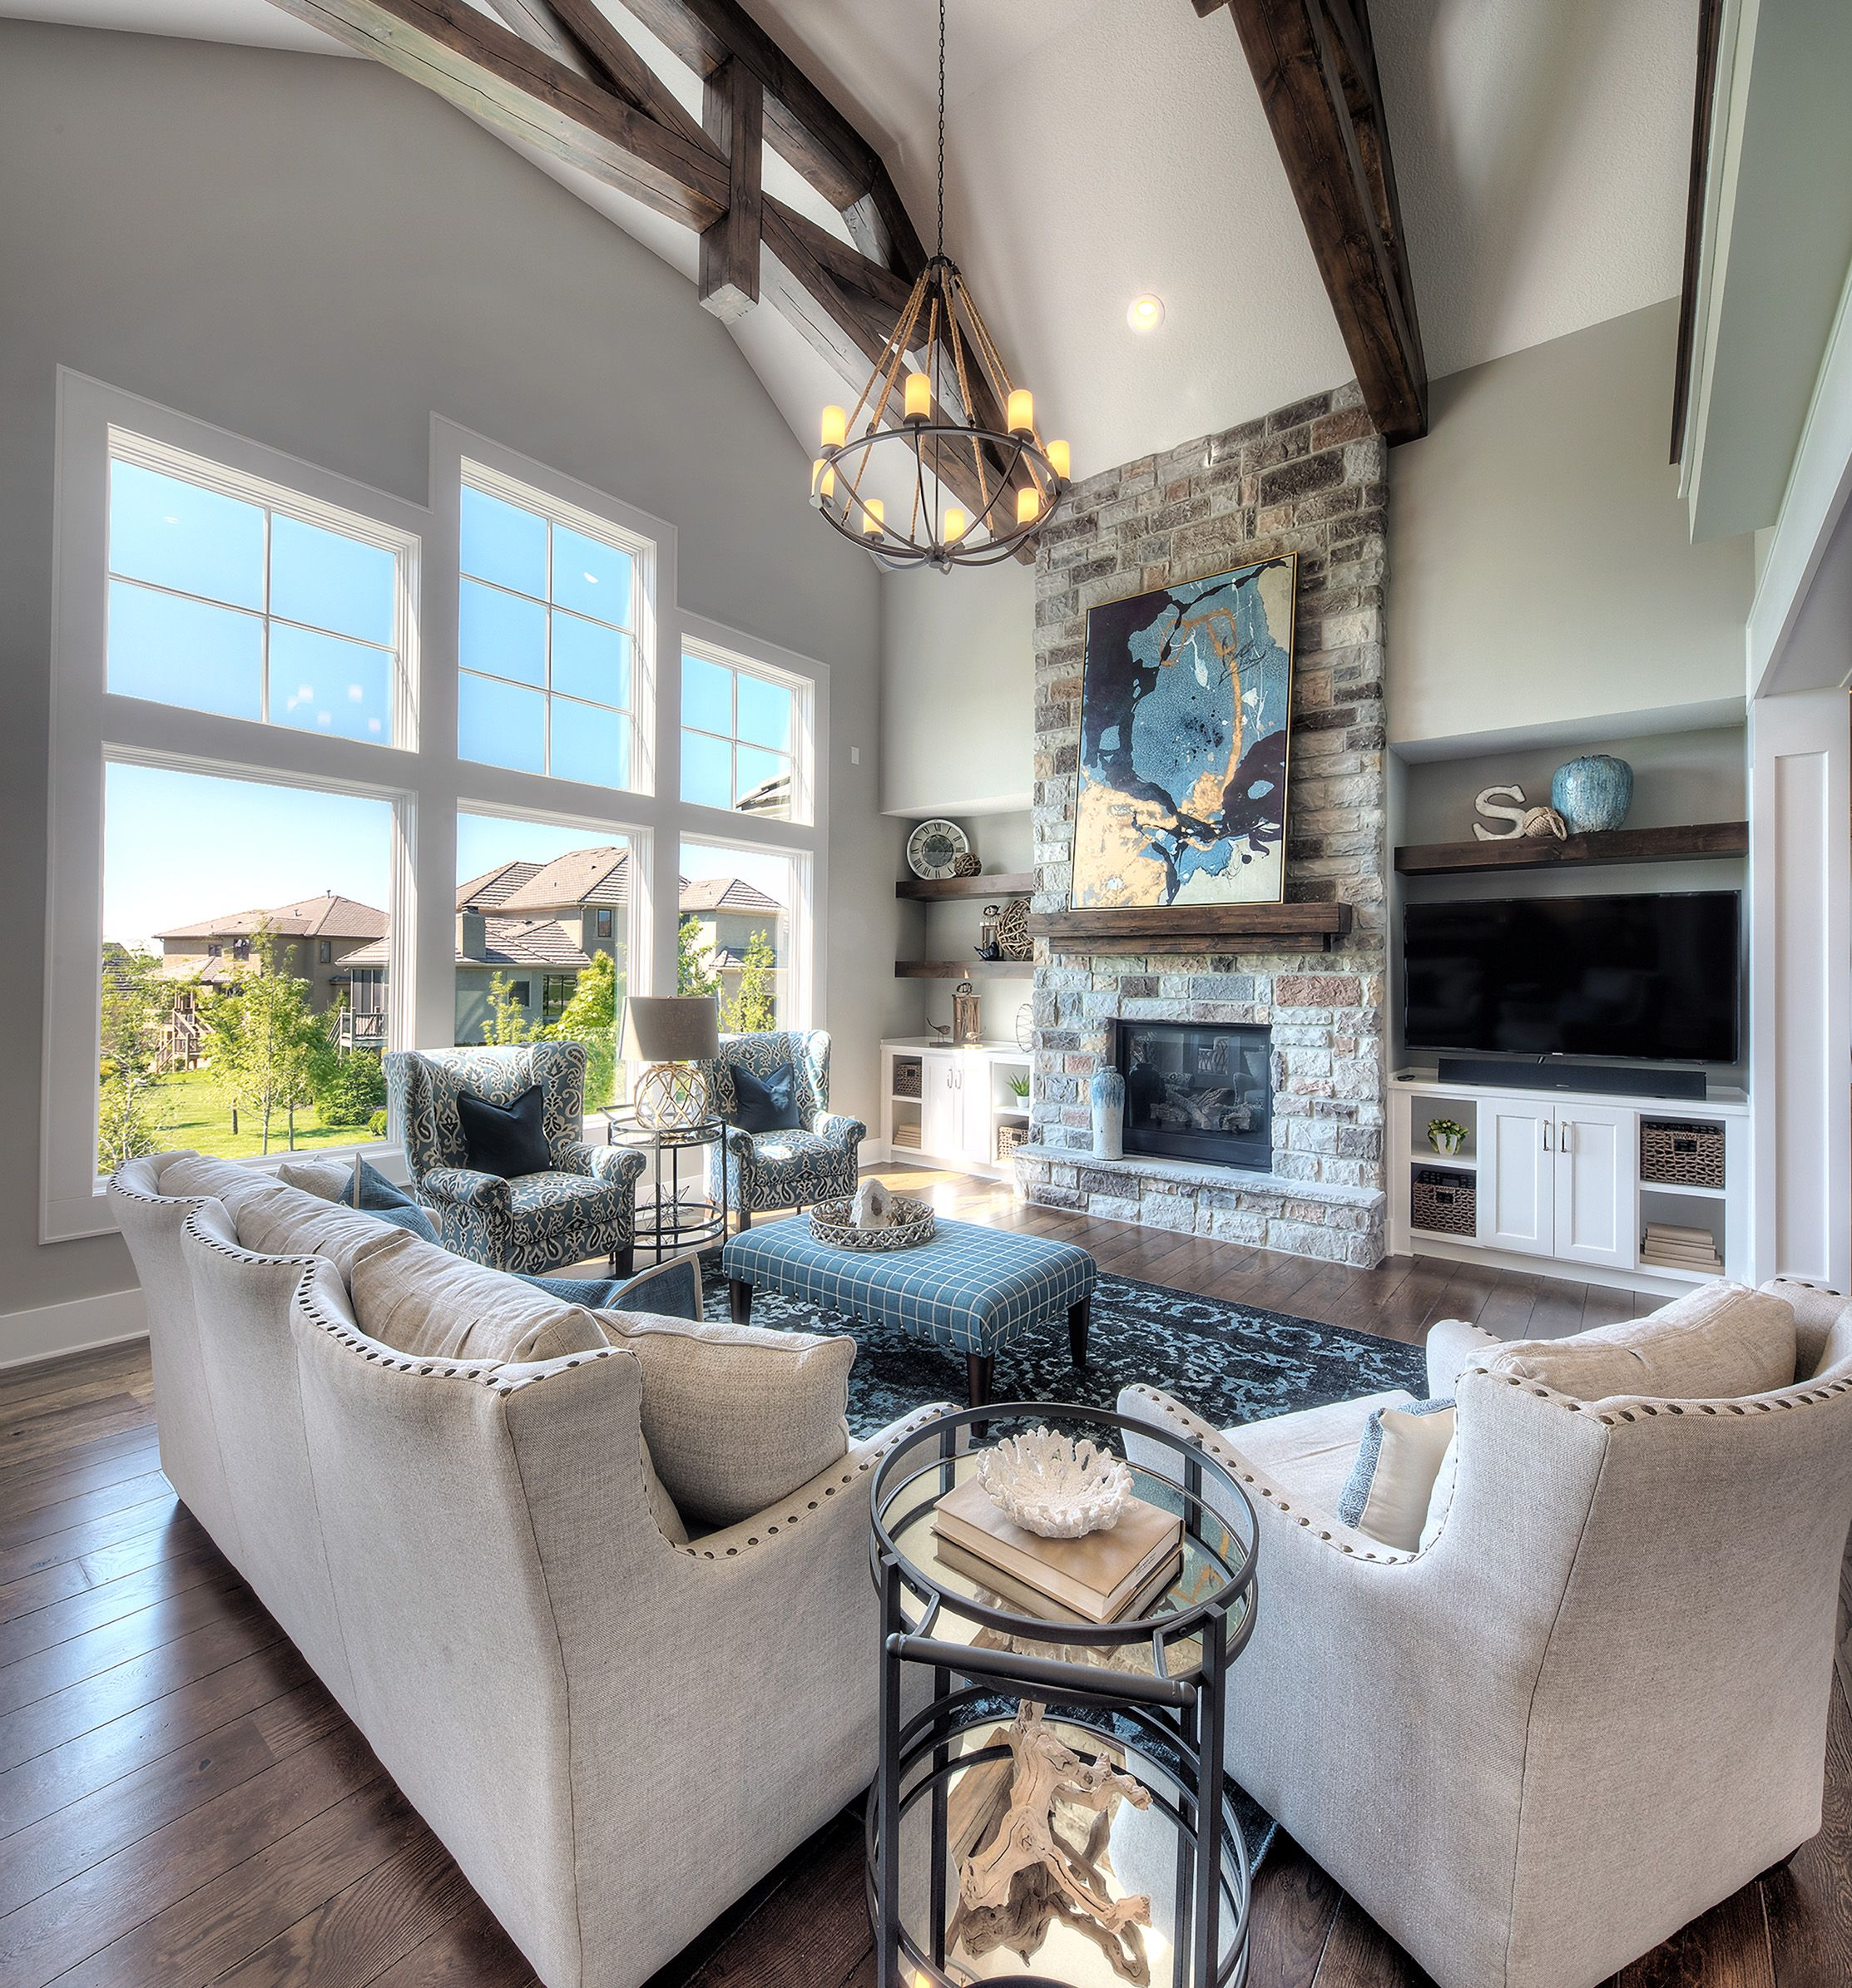 Design For Living Room With Open Kitchen Houzz Home Design: Living Room, Stone Fireplace, Floor To Ceiling Fireplace